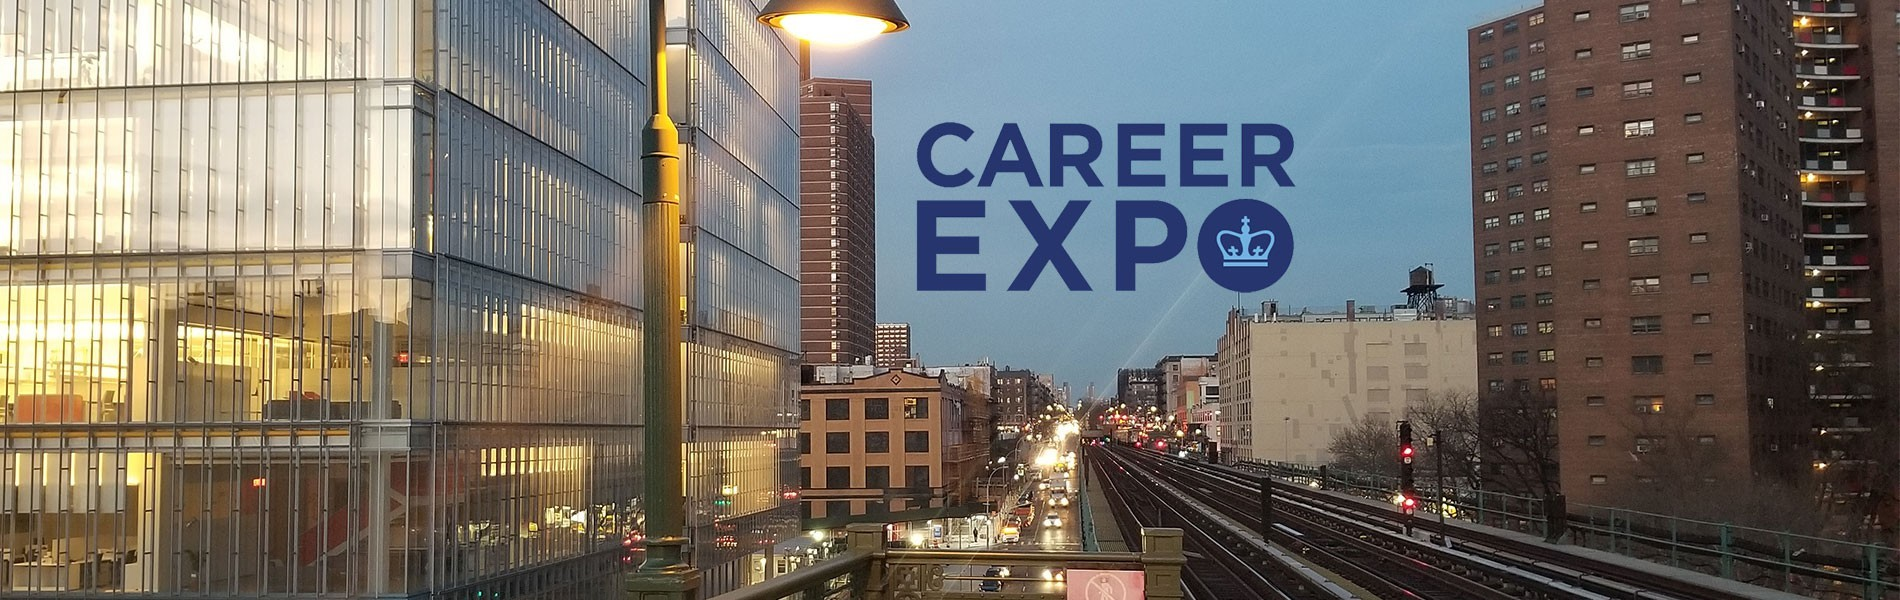 Career Expo with manhattanville campus as backdrop